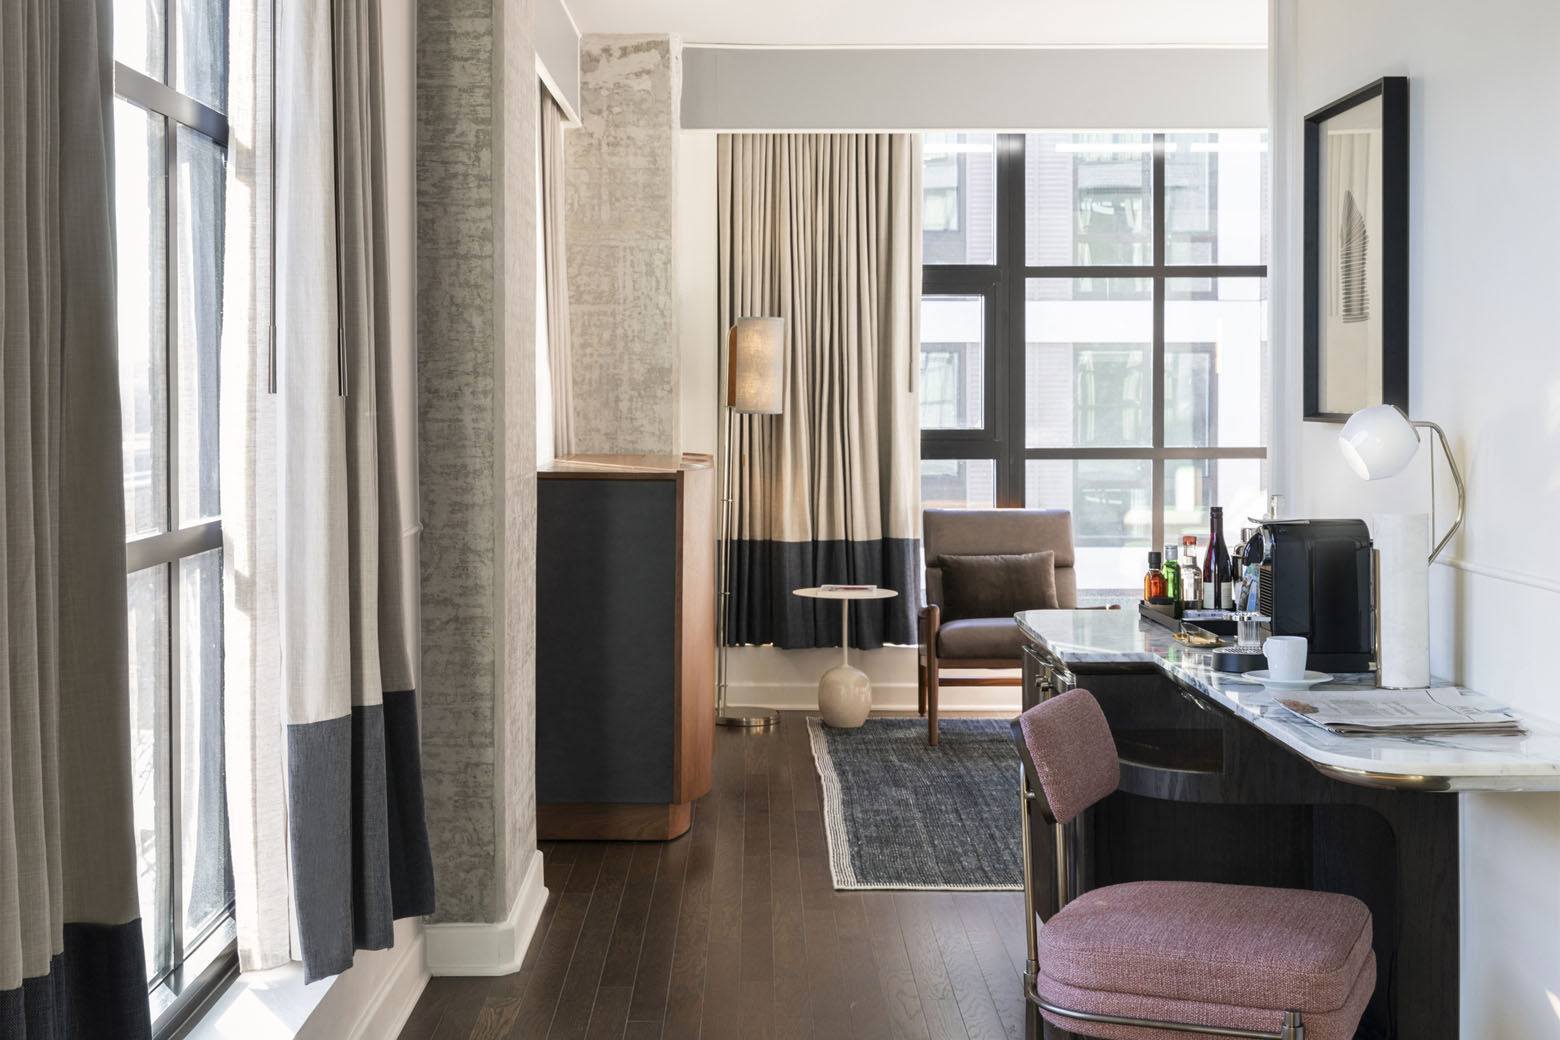 A suite in the Thompson D.C. in the Capitol Riverfront's Navy Yard Neighborhood. The hotel's 225 rooms and suites all have floor-to-ceiling windows and views of the Anacostia River and Nationals Park.